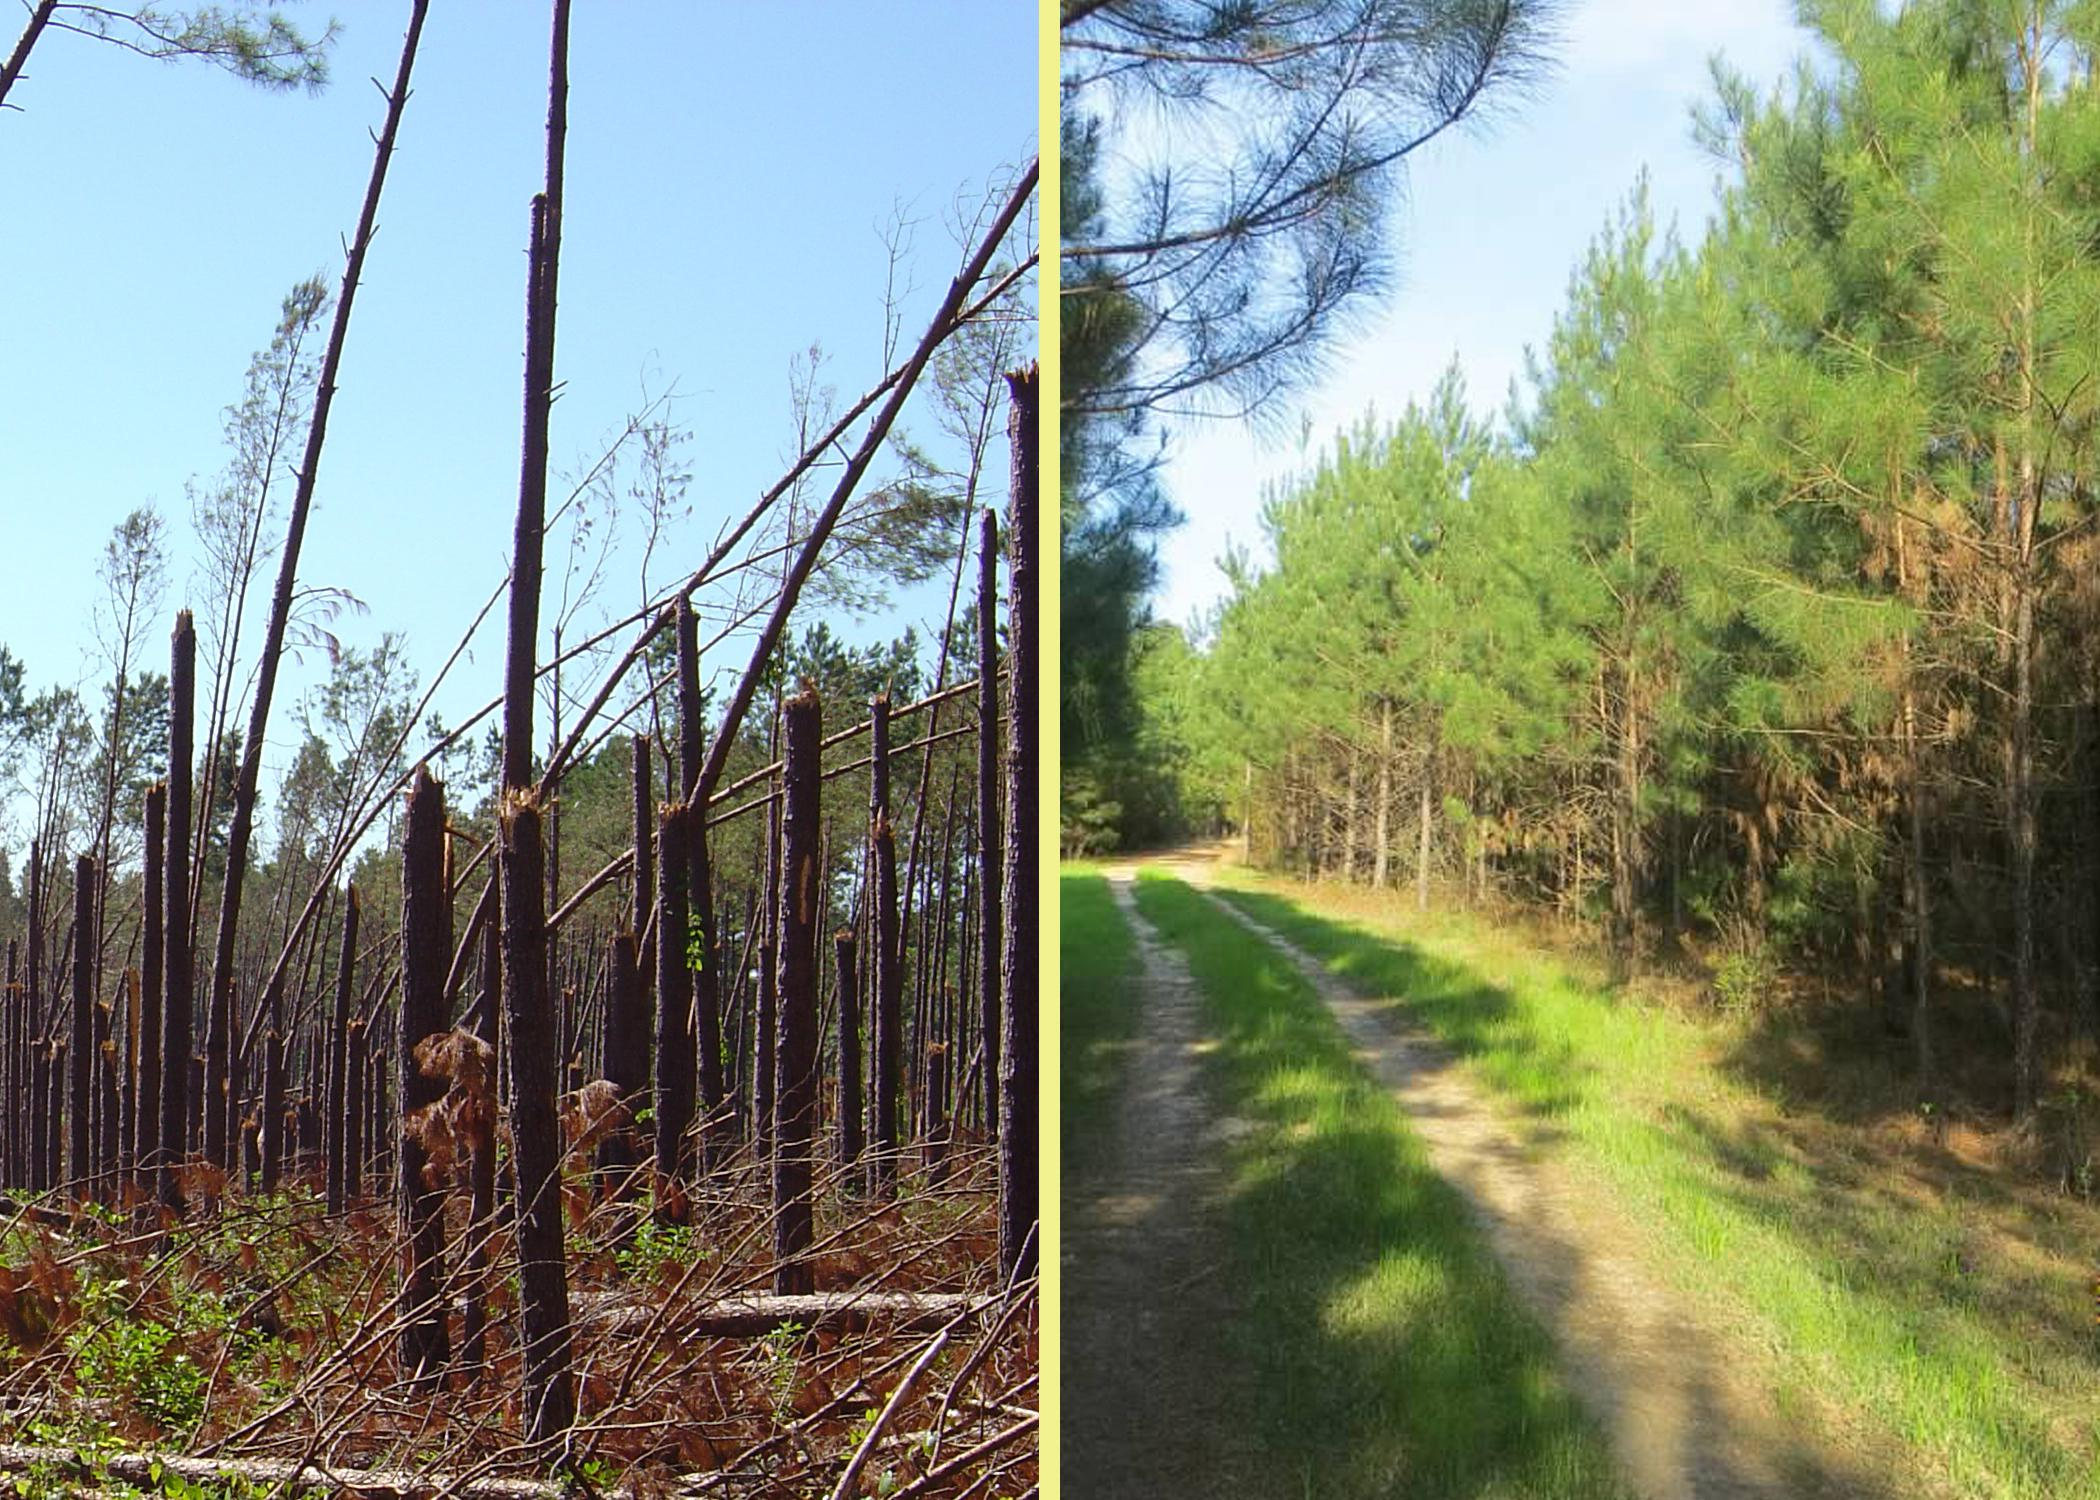 Tree farmer Cecil Chambliss thought Hurricane Katrina put him out of business, but 10 years later, he has changed his management practices and improved production on his Forrest County farm by replanting with longleaf and slash pine, which are more resistant to high winds than loblolly pine. (Submitted photo)